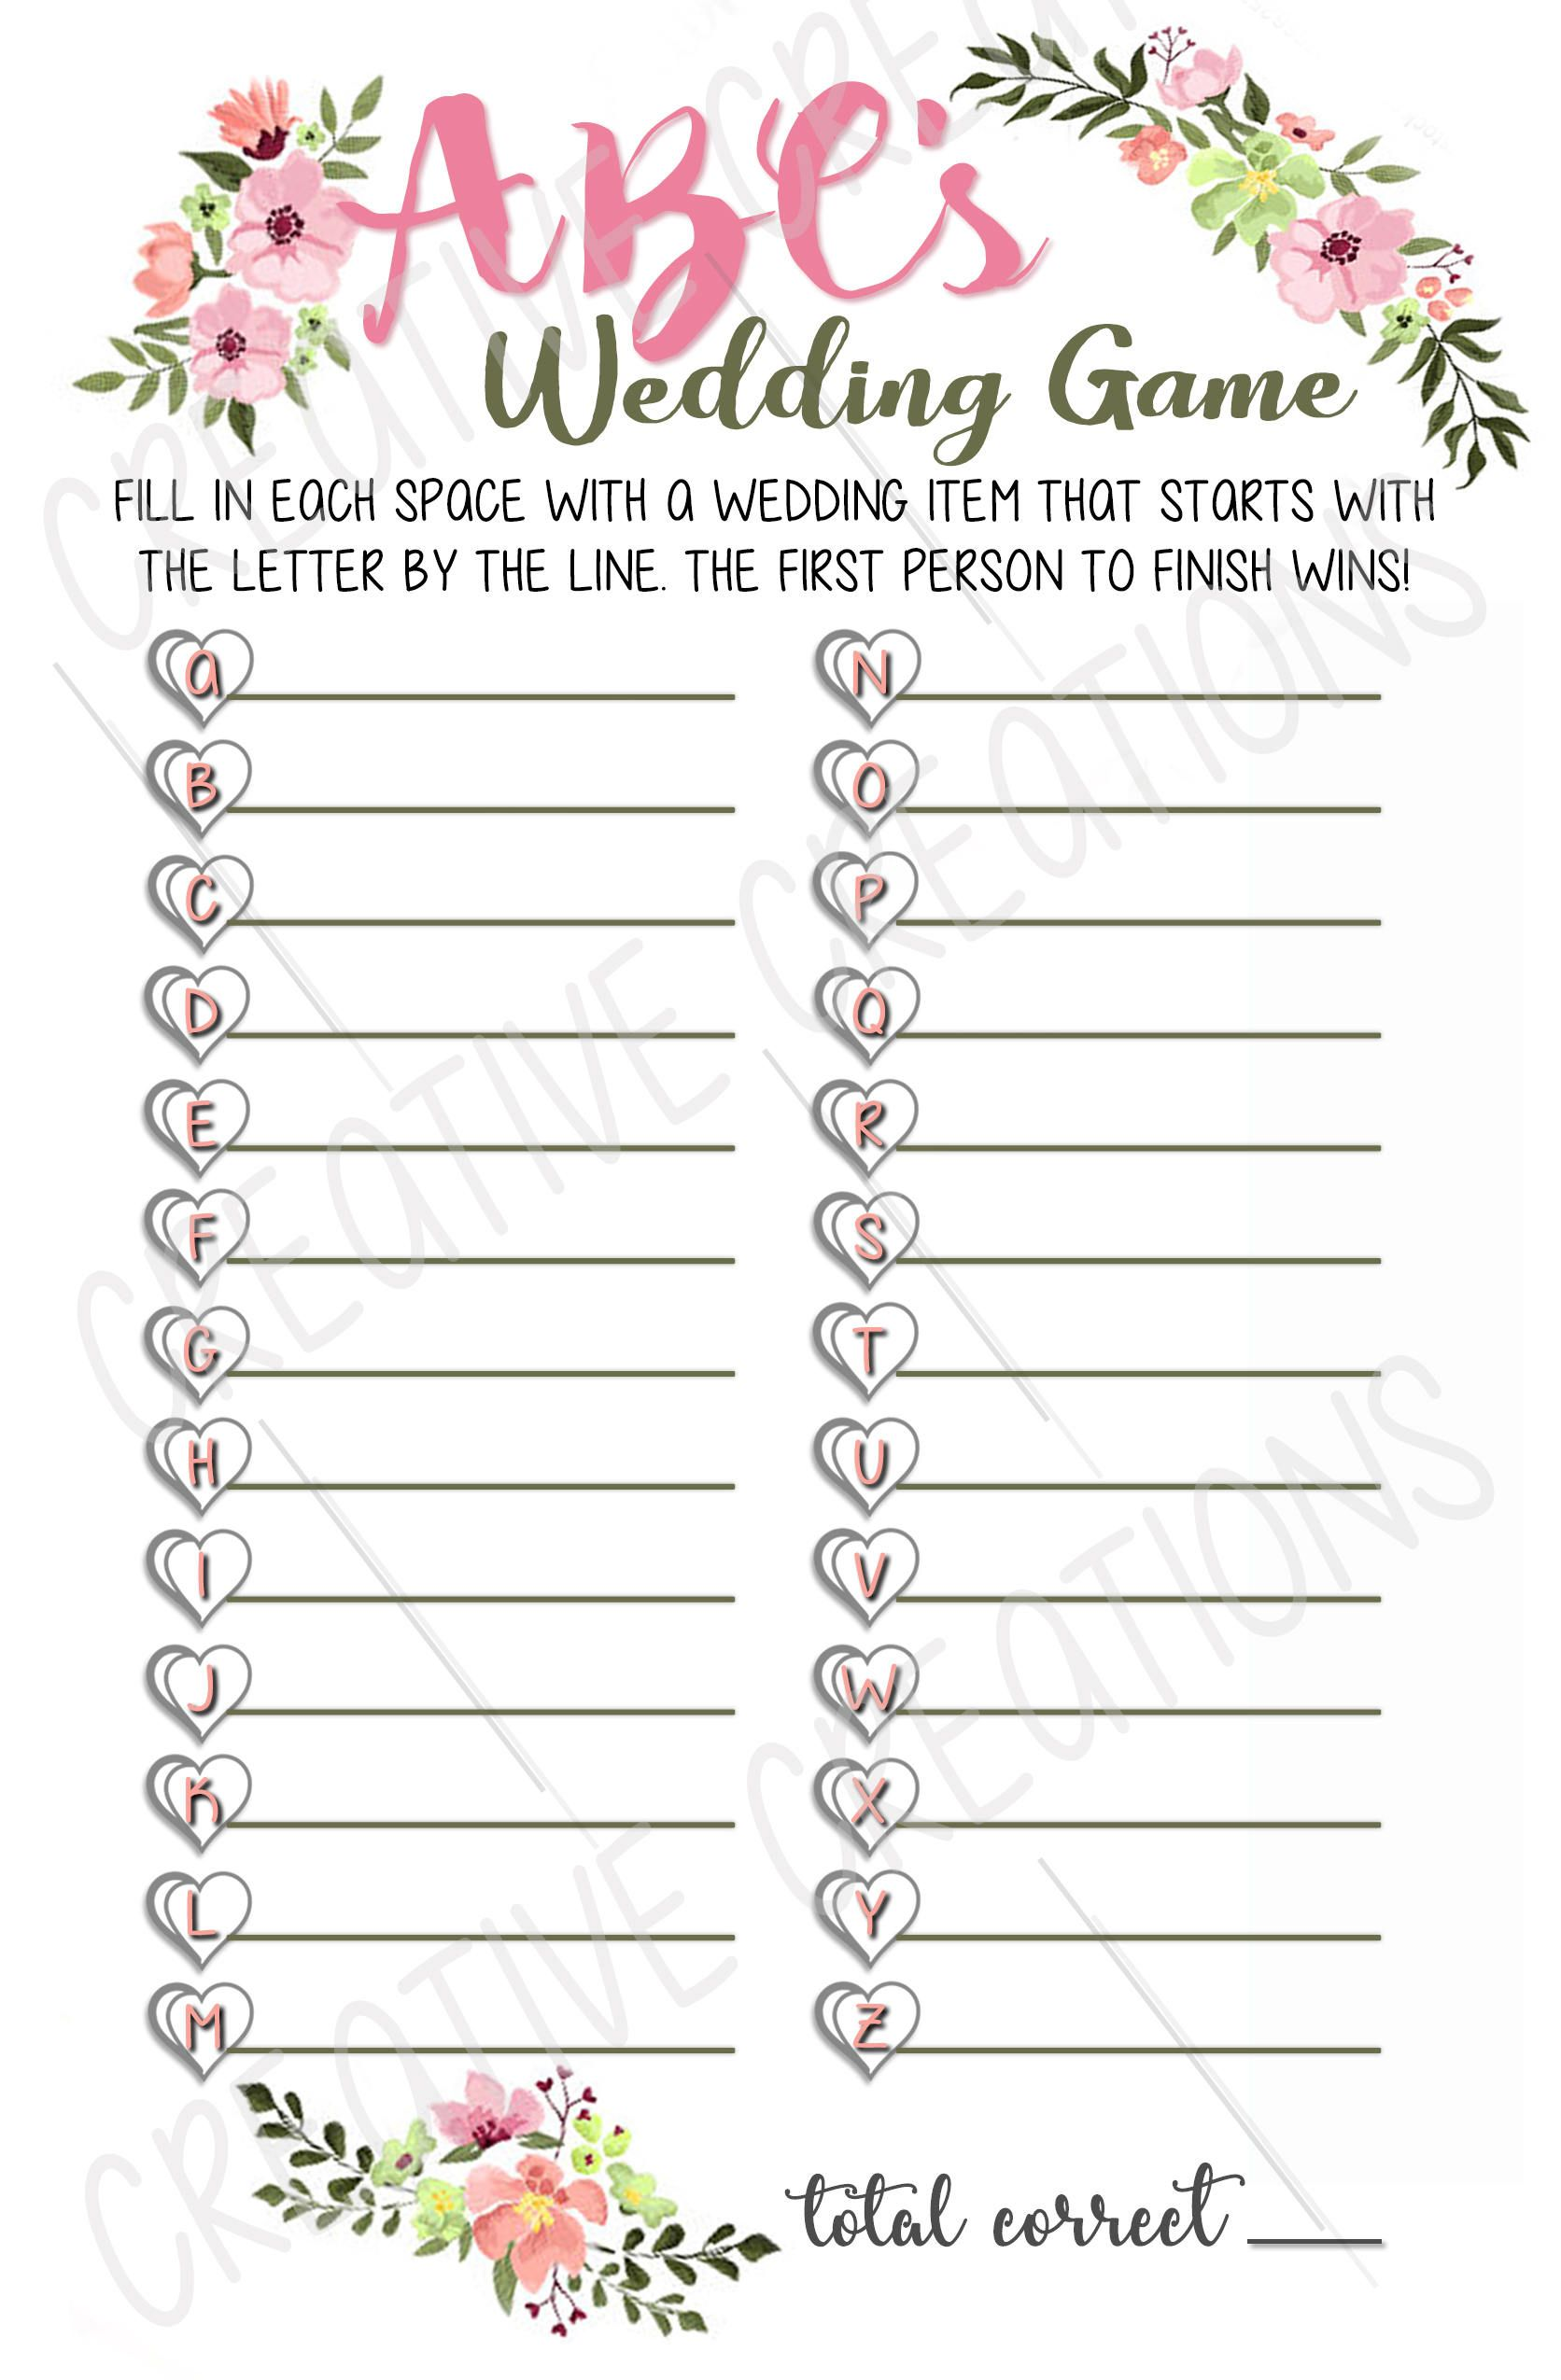 templates for bridal shower games - bridal shower game abc 39 s bridal shower game printable